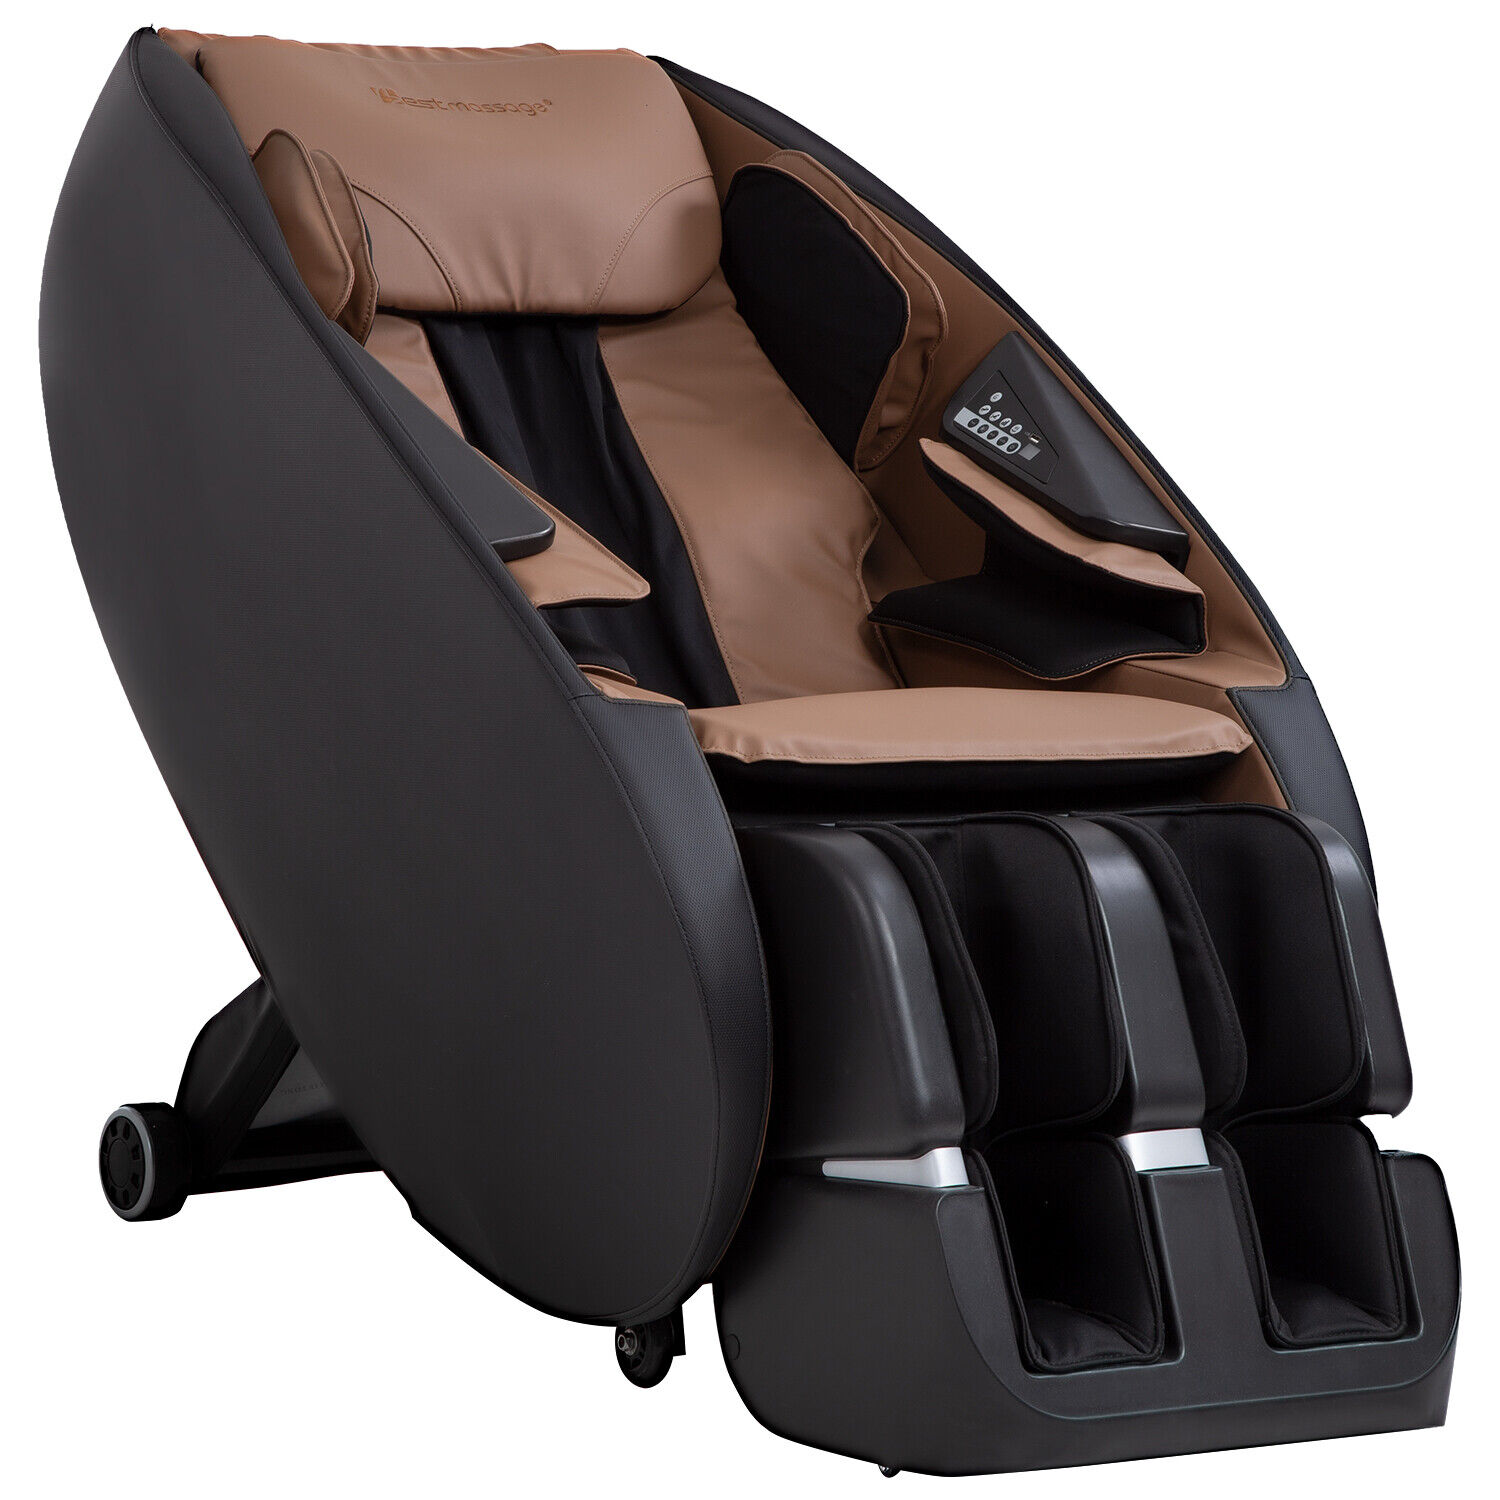 Shiatsu Massage Chairs Full Body Electric with built-in Heart Foot Roller Electric Massage Chairs